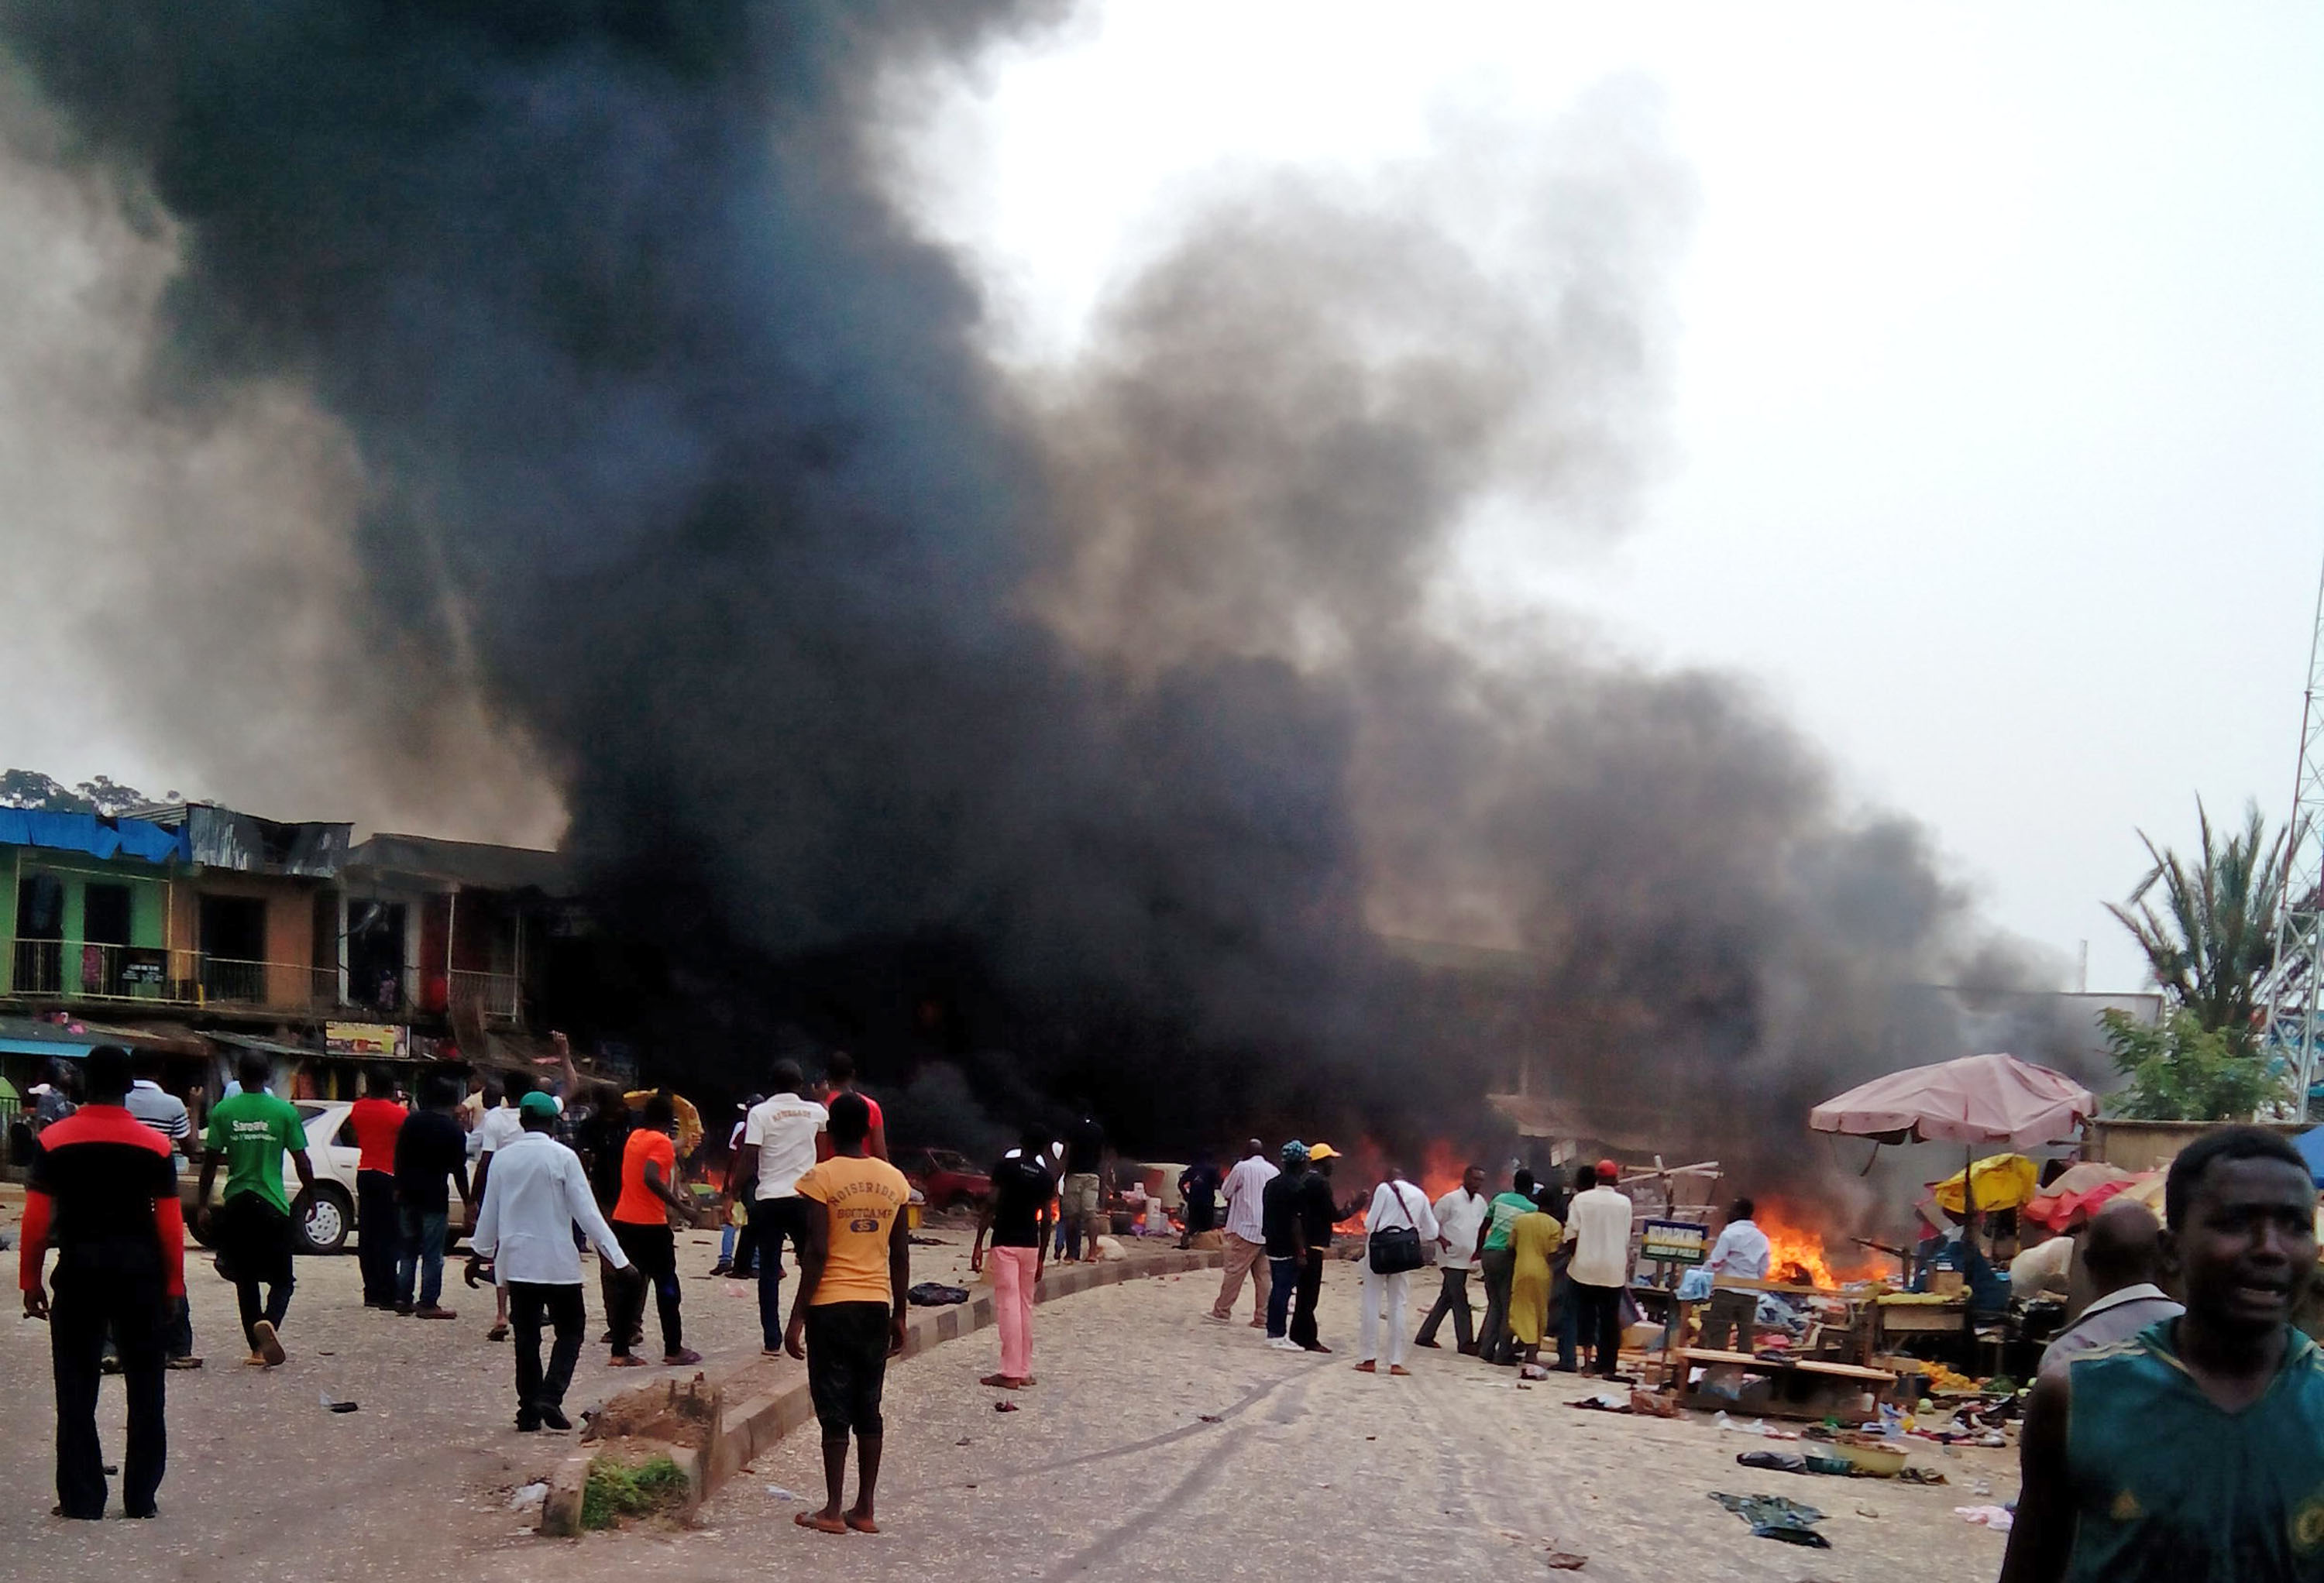 Smoke rises after a bomb blast at a bus terminal in Jos, Nigeria, Tuesday, May 20, 2014.